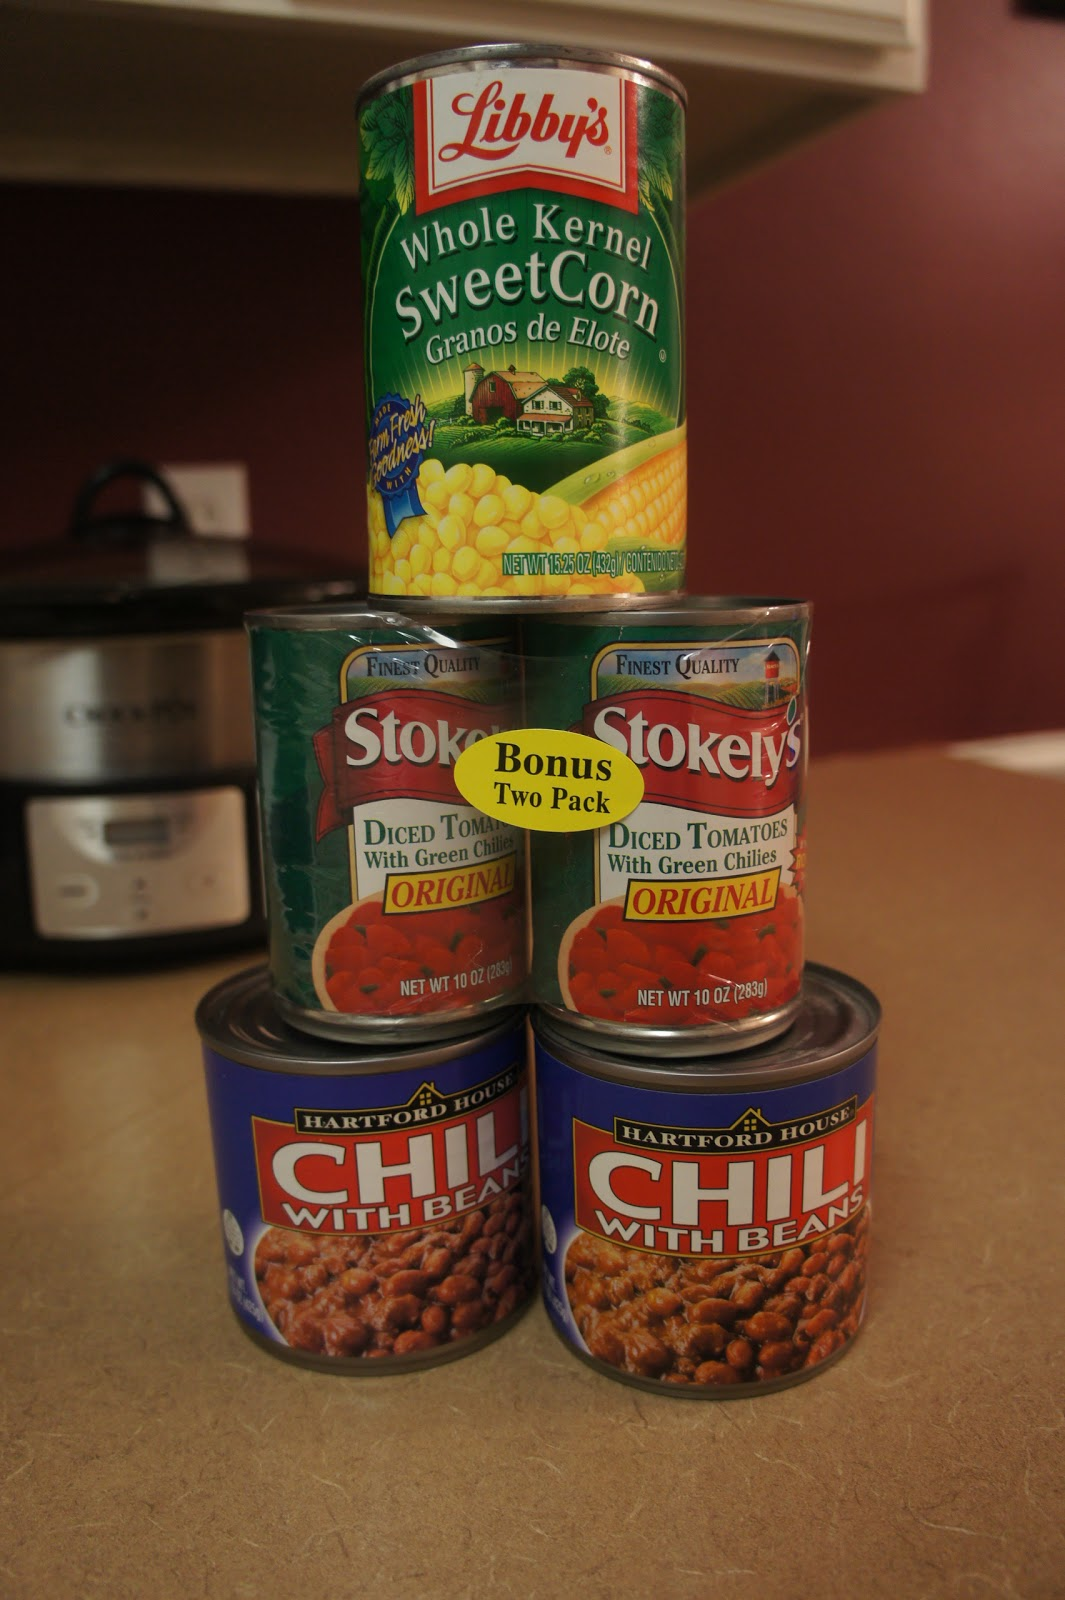 The Food Items From Dollar Store Needed For This Chili Recipe